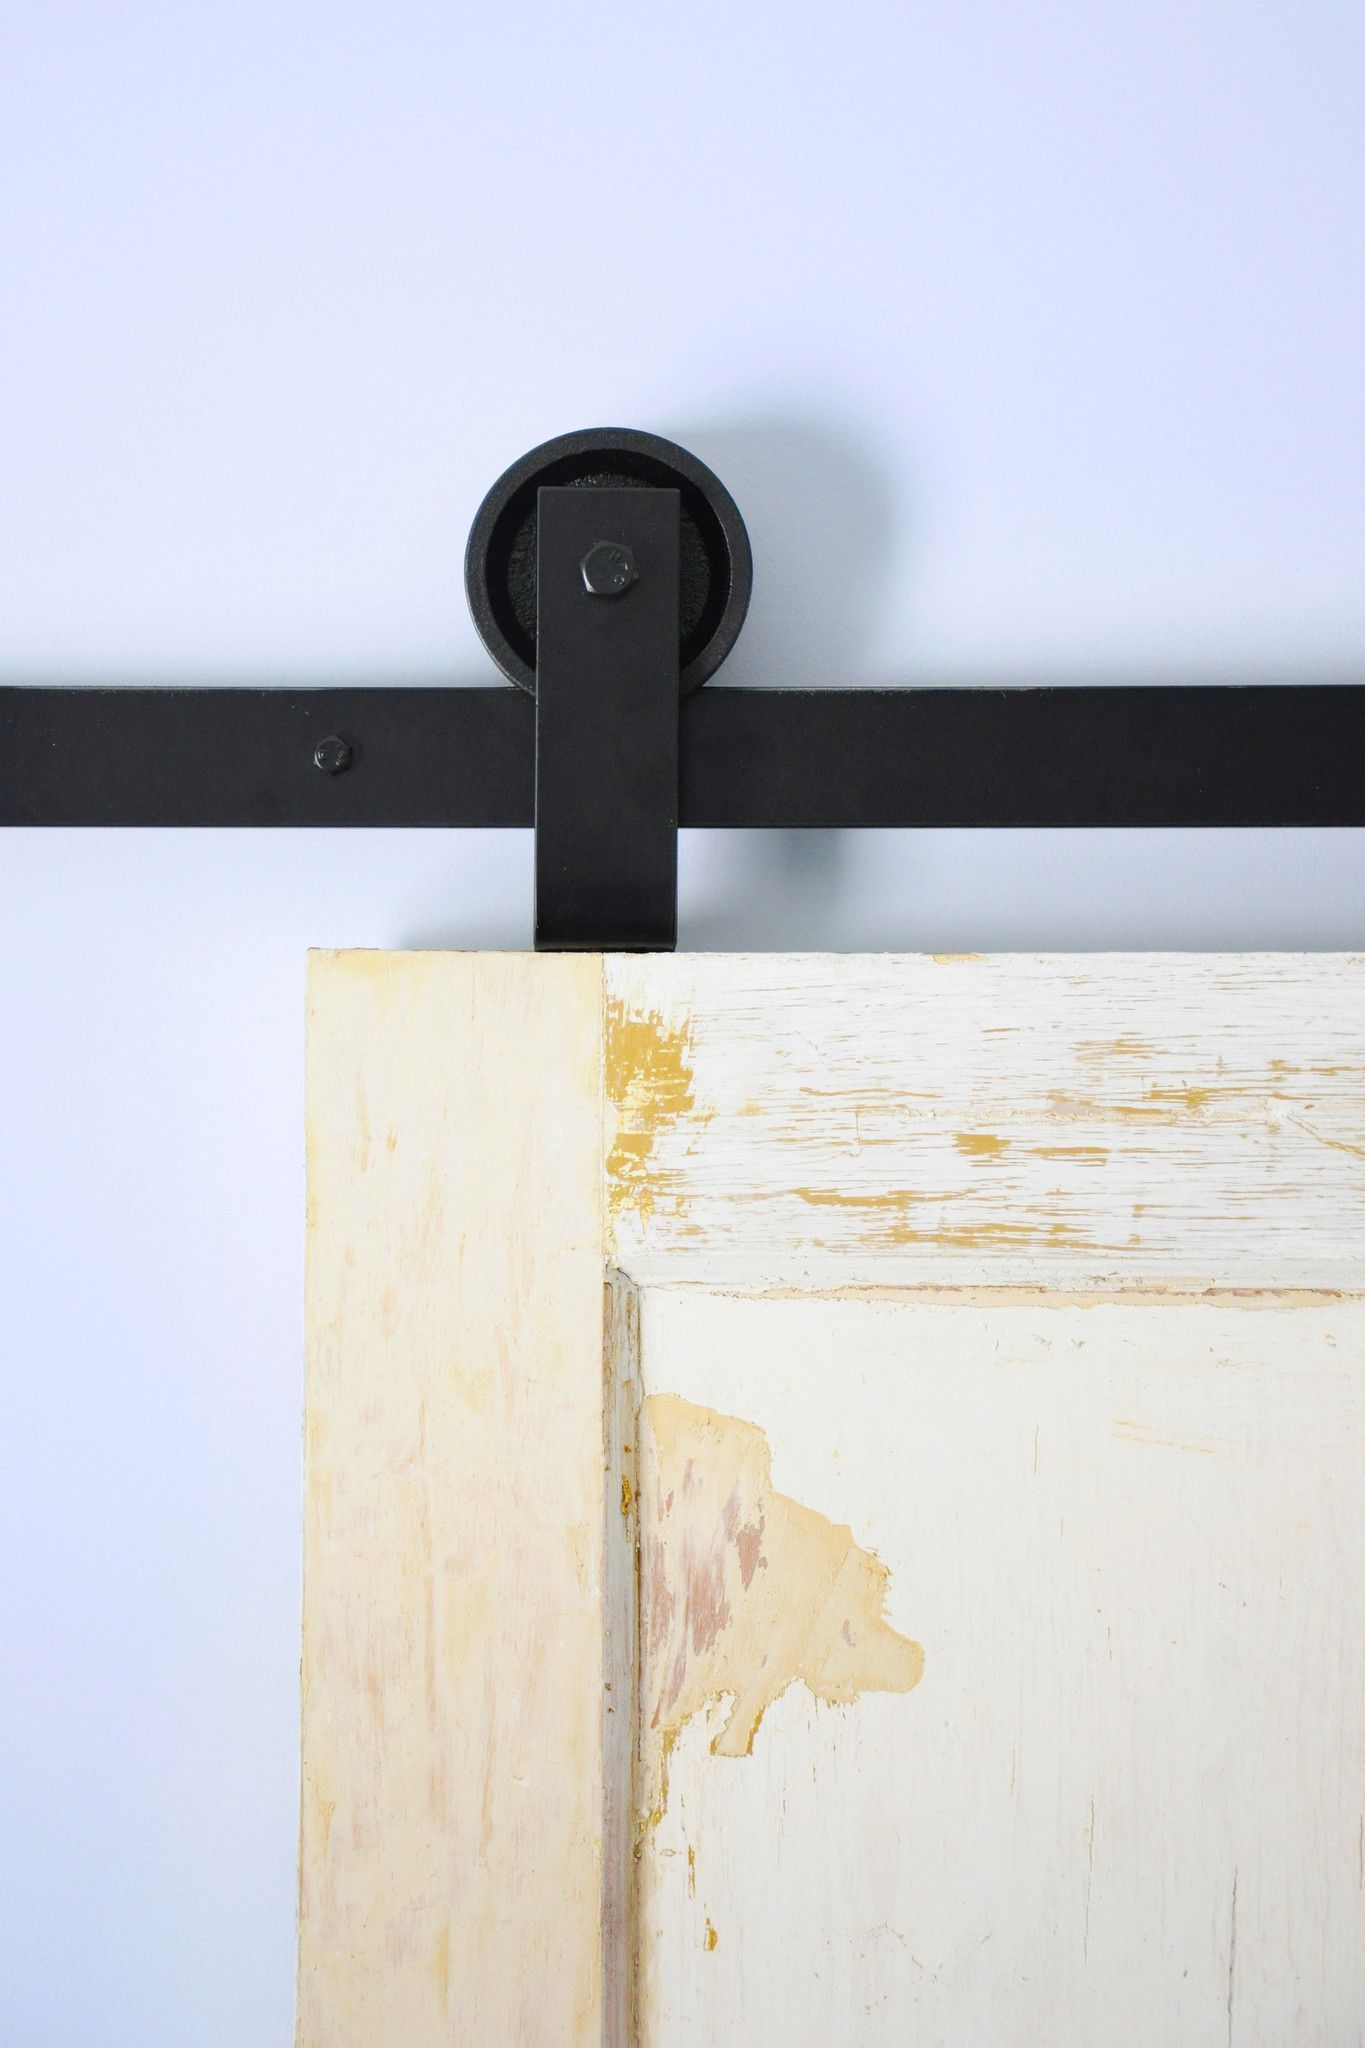 Top mount barn door hardware minimalist design For the Home